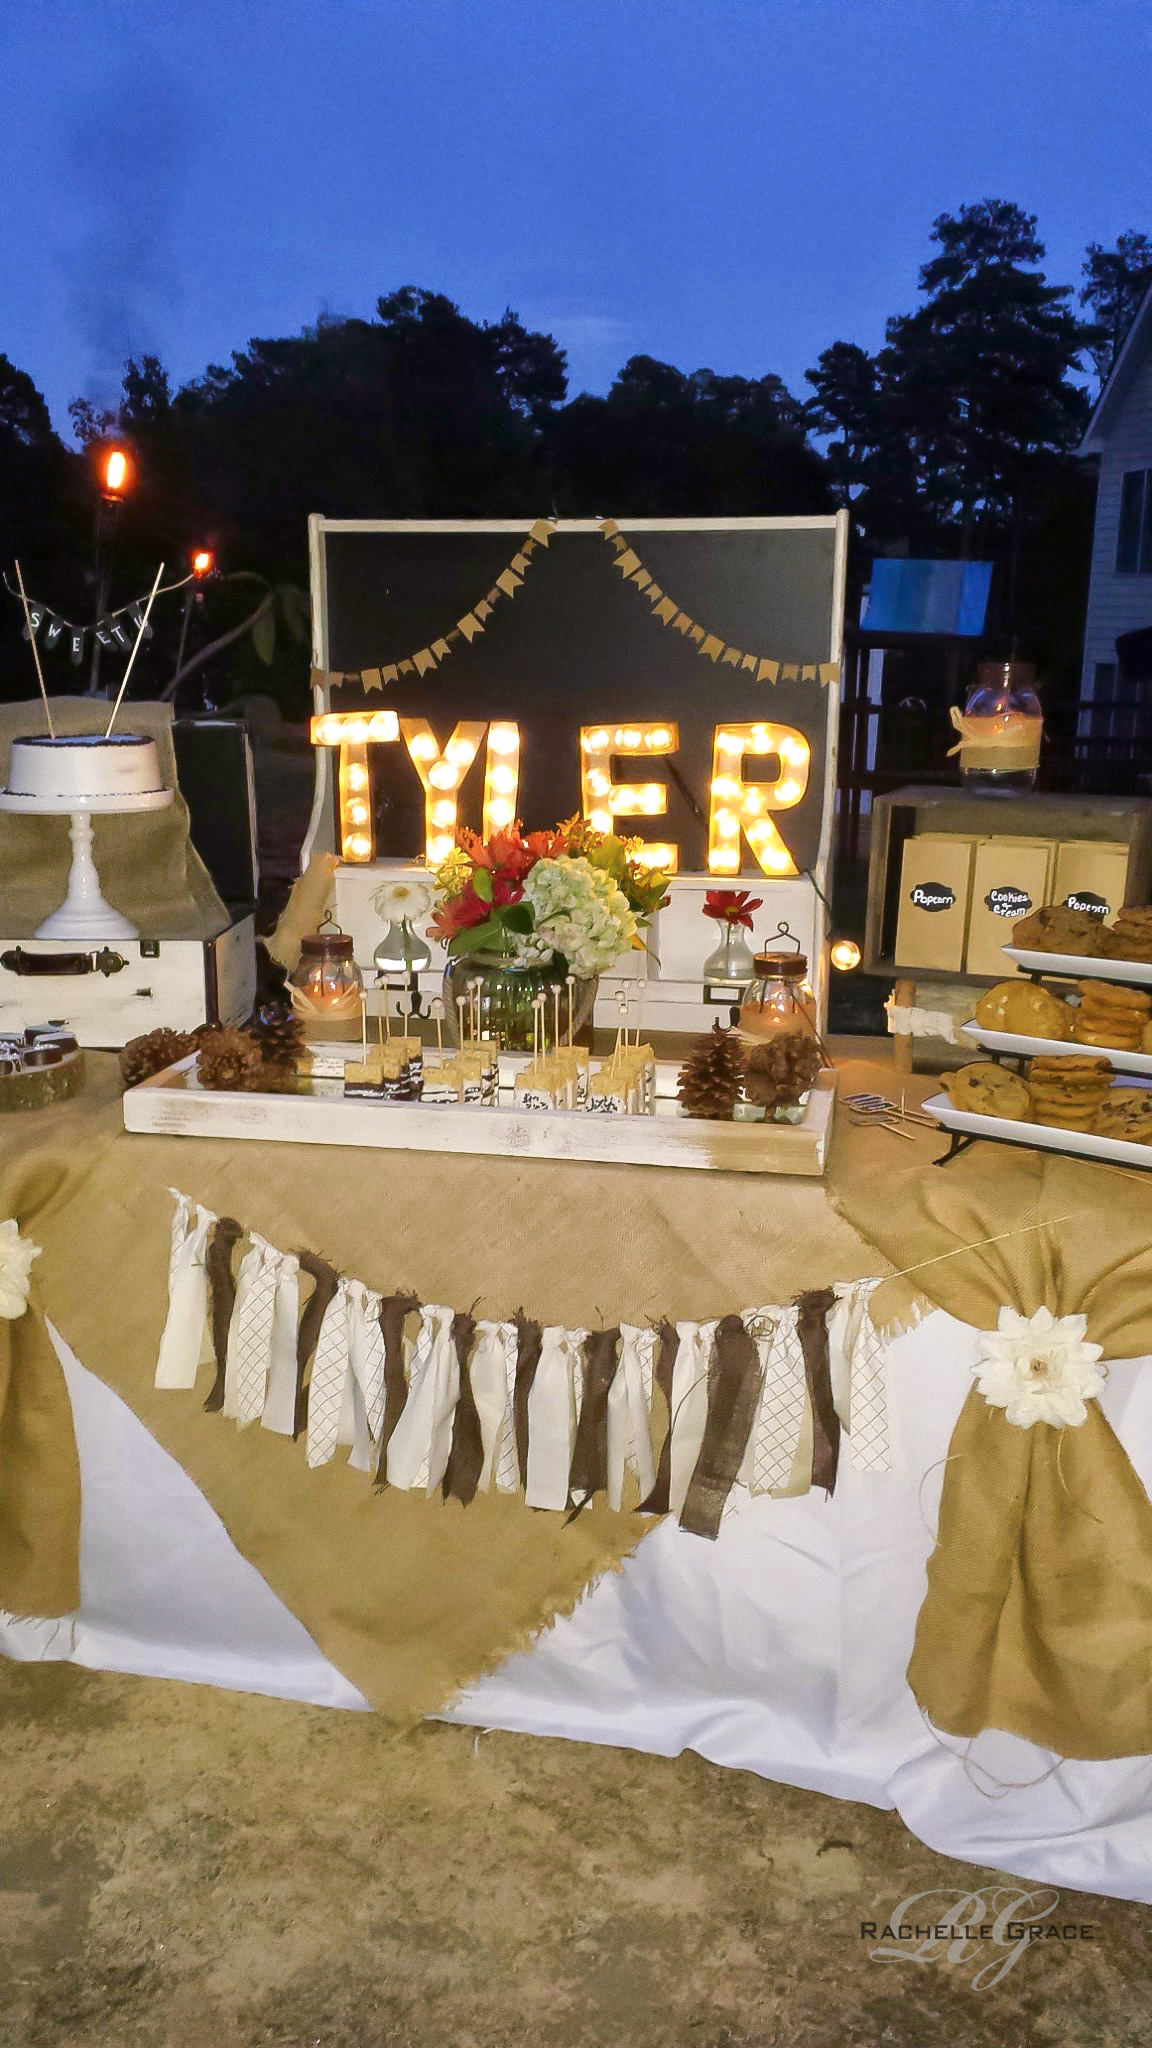 Sweet 16 Backyard Bonfire Diy Marquee Light throughout 12 Some of the Coolest Designs of How to Build Sweet 16 Backyard Party Ideas